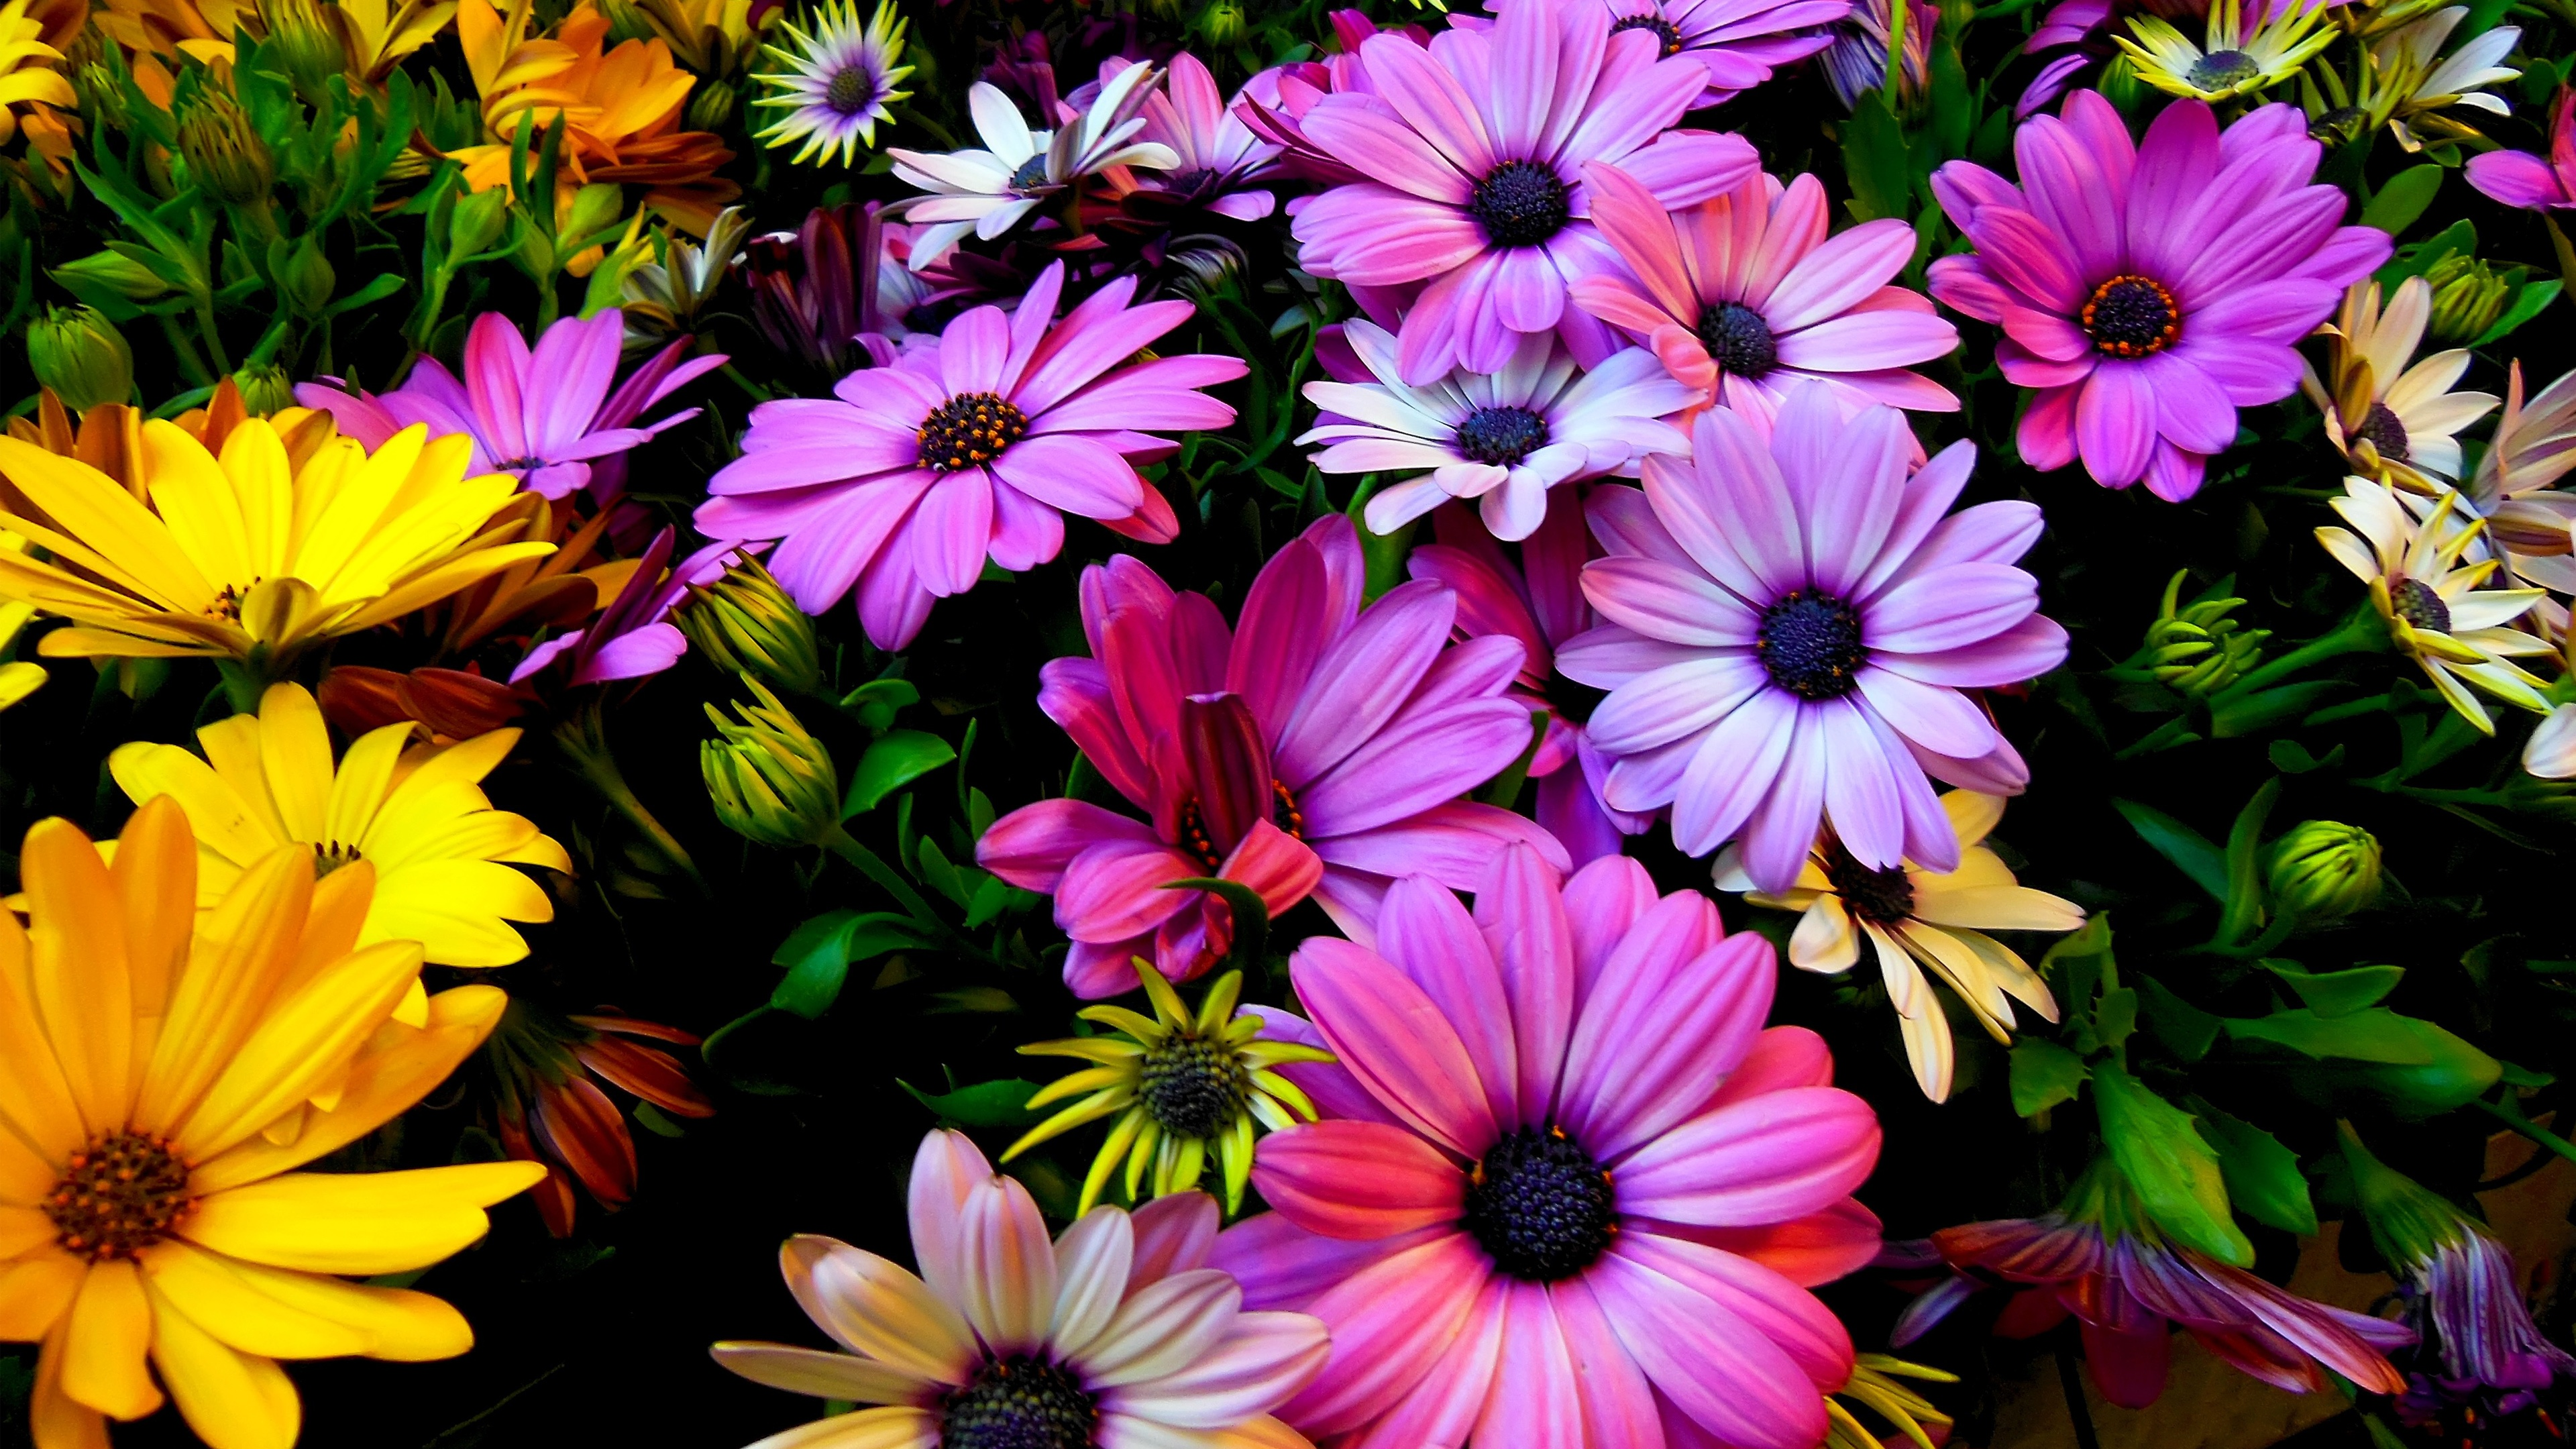 Purple Yellow Daisy Flowers Wallpapers In Jpg Format For Free Download